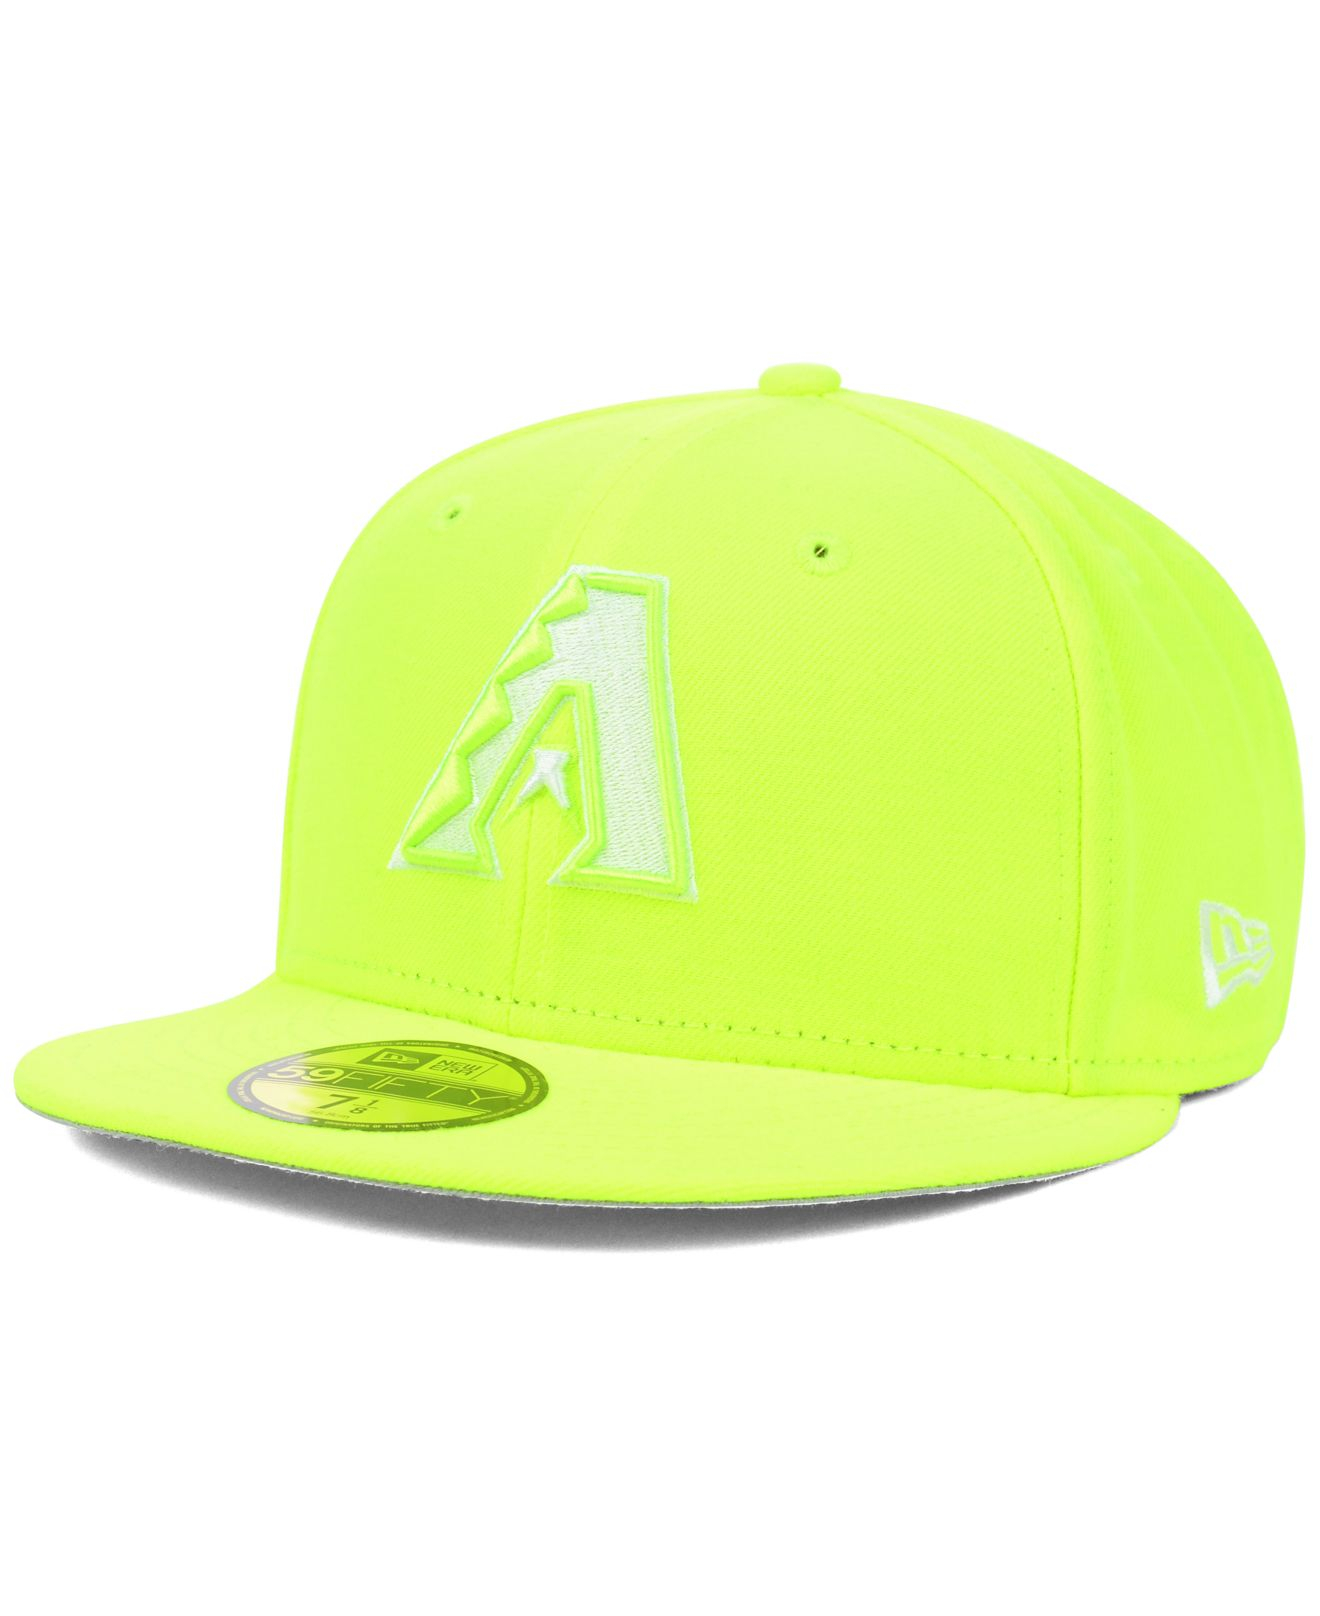 139633850bc ... cheapest lyst ktz arizona diamondbacks mlb c dub 59fifty cap in yellow  for men 24c93 13c7b